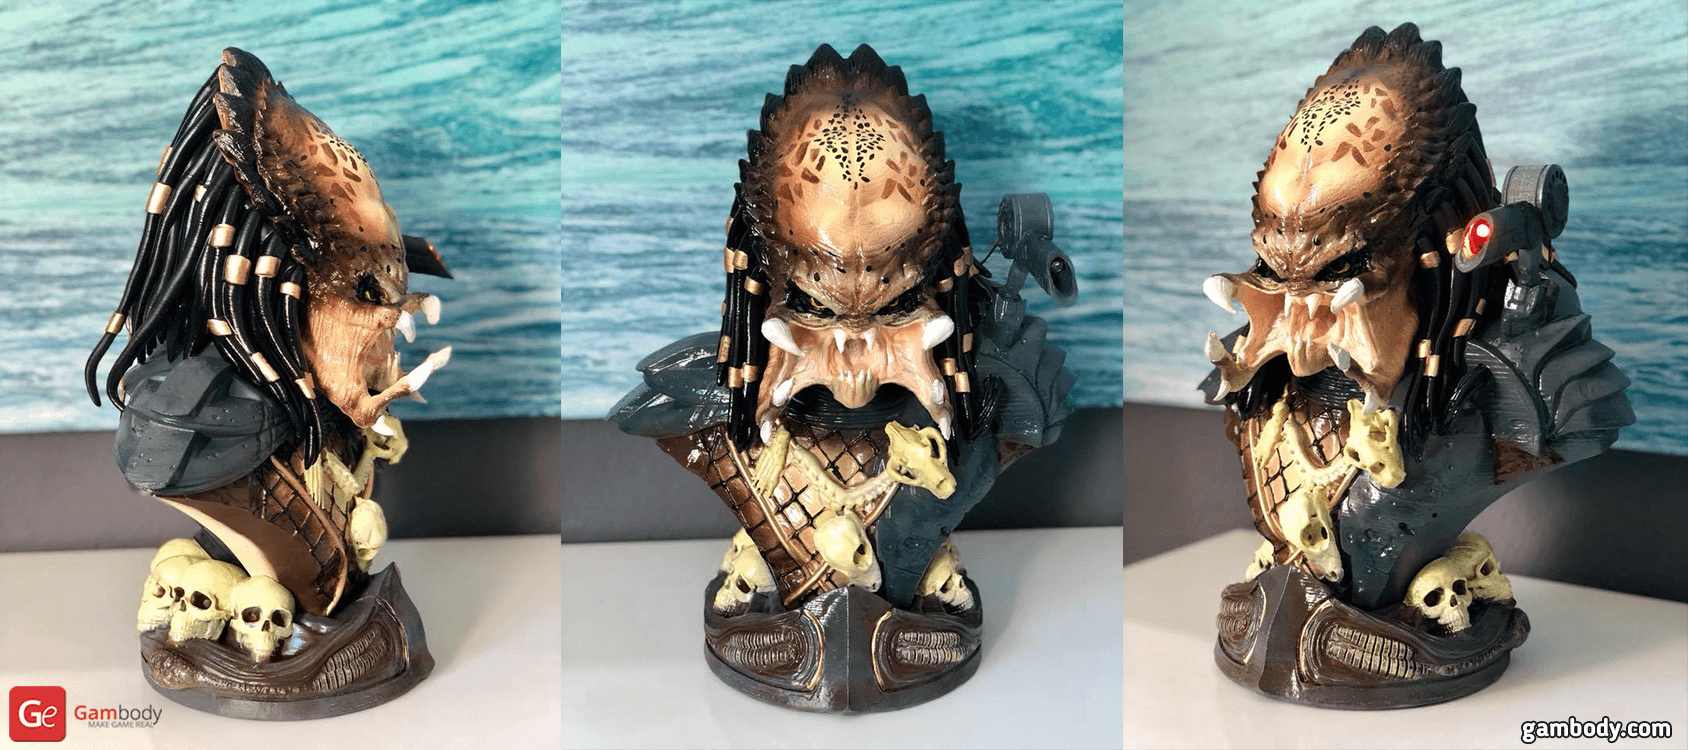 Predator Bust 3D Printing Figurine Photo 2